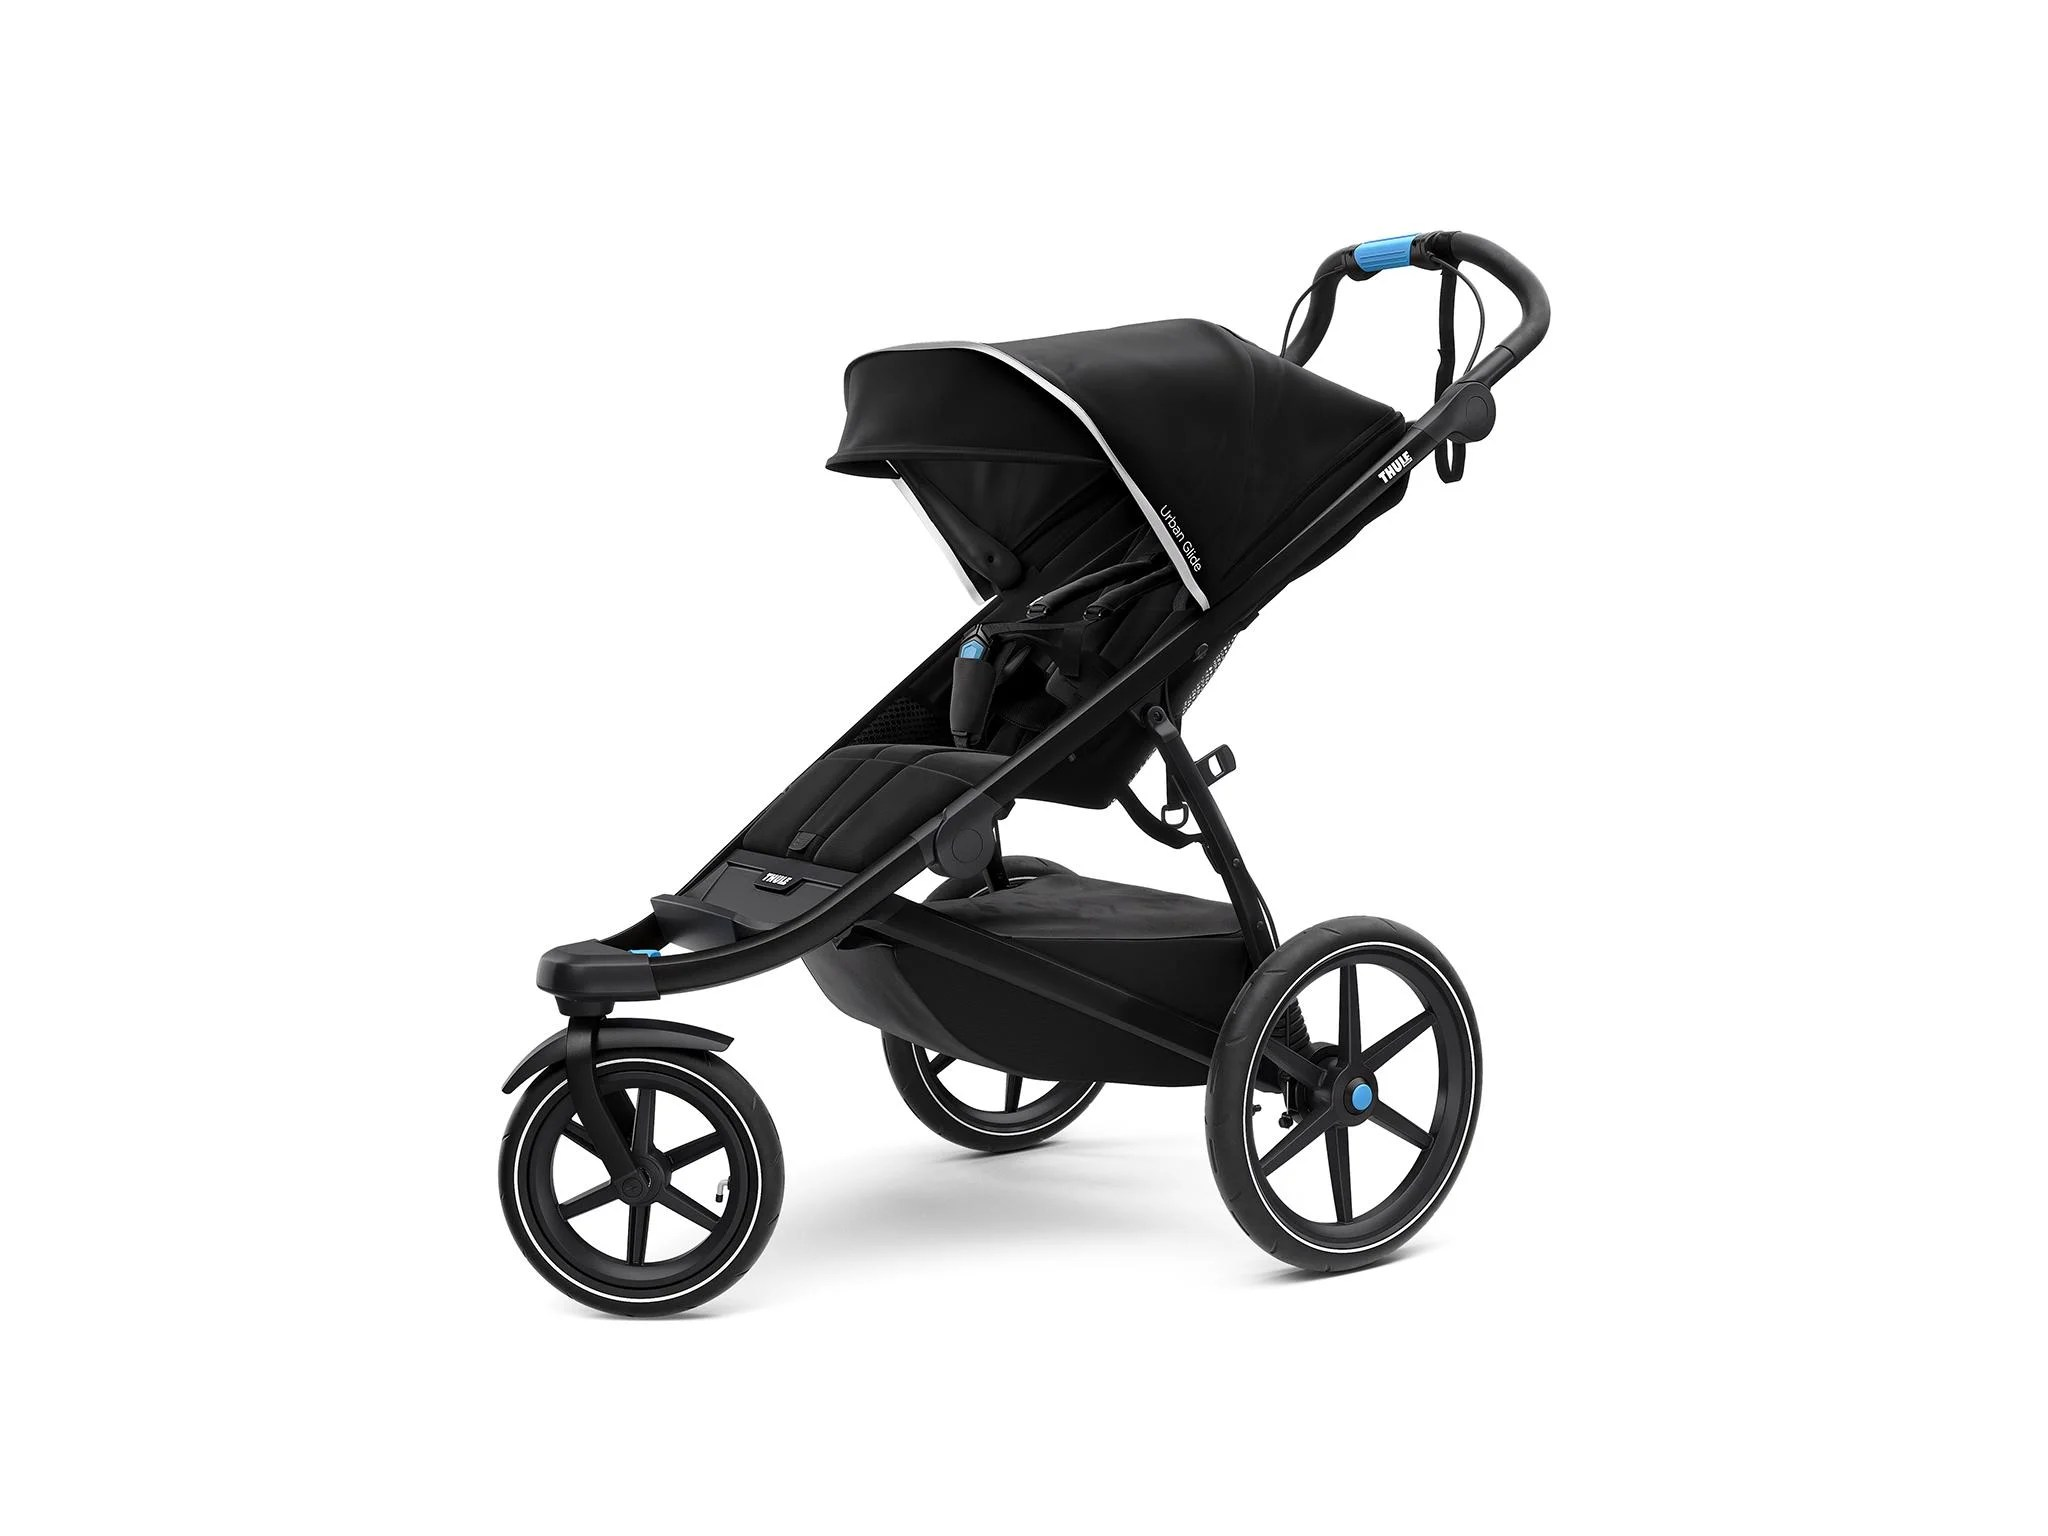 Easywalker Jogging Stroller Best Jogging Stroller For Keeping Fit With Your Baby And Toddler